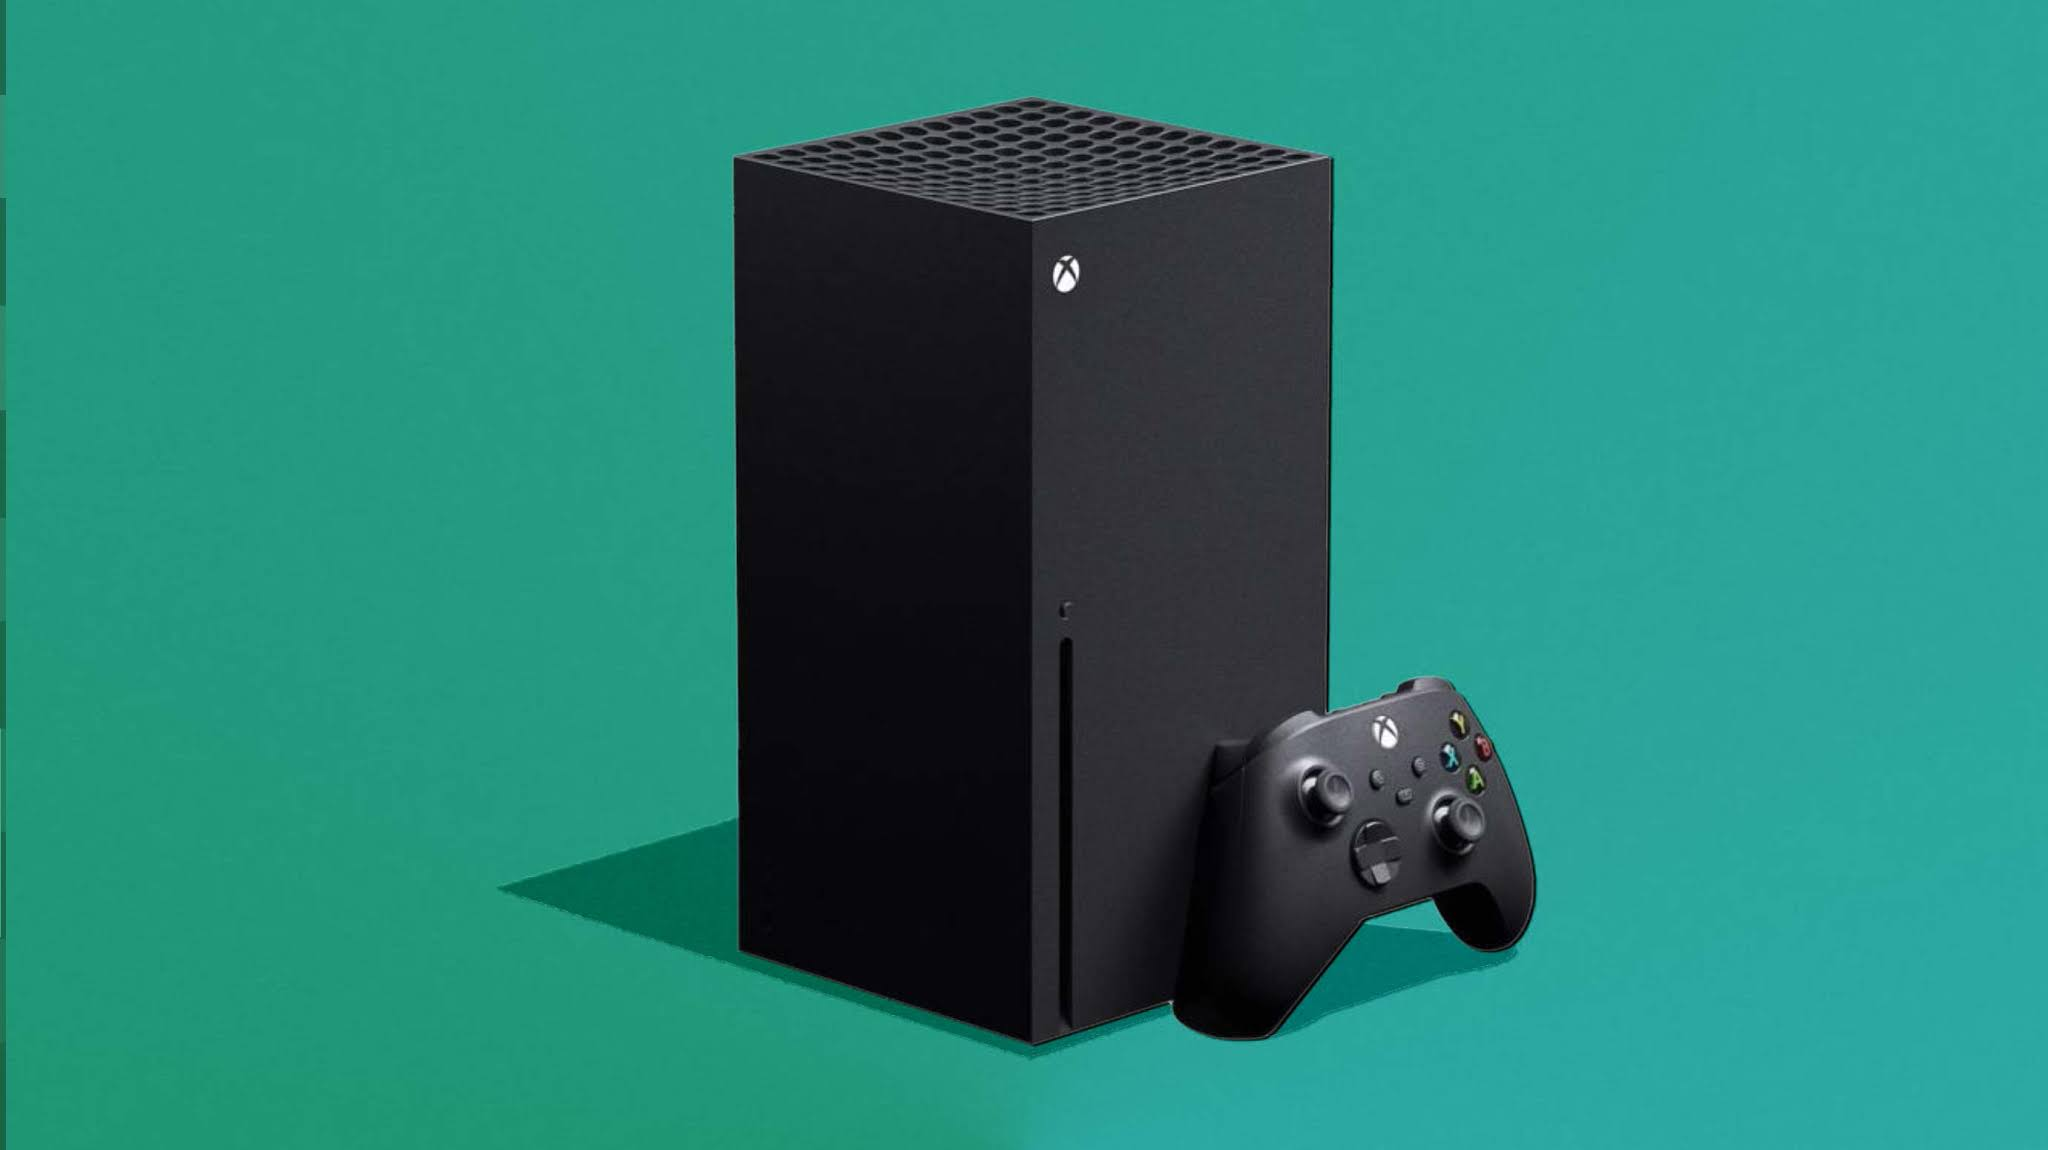 How to take screenshots on Xbox Series X and share them